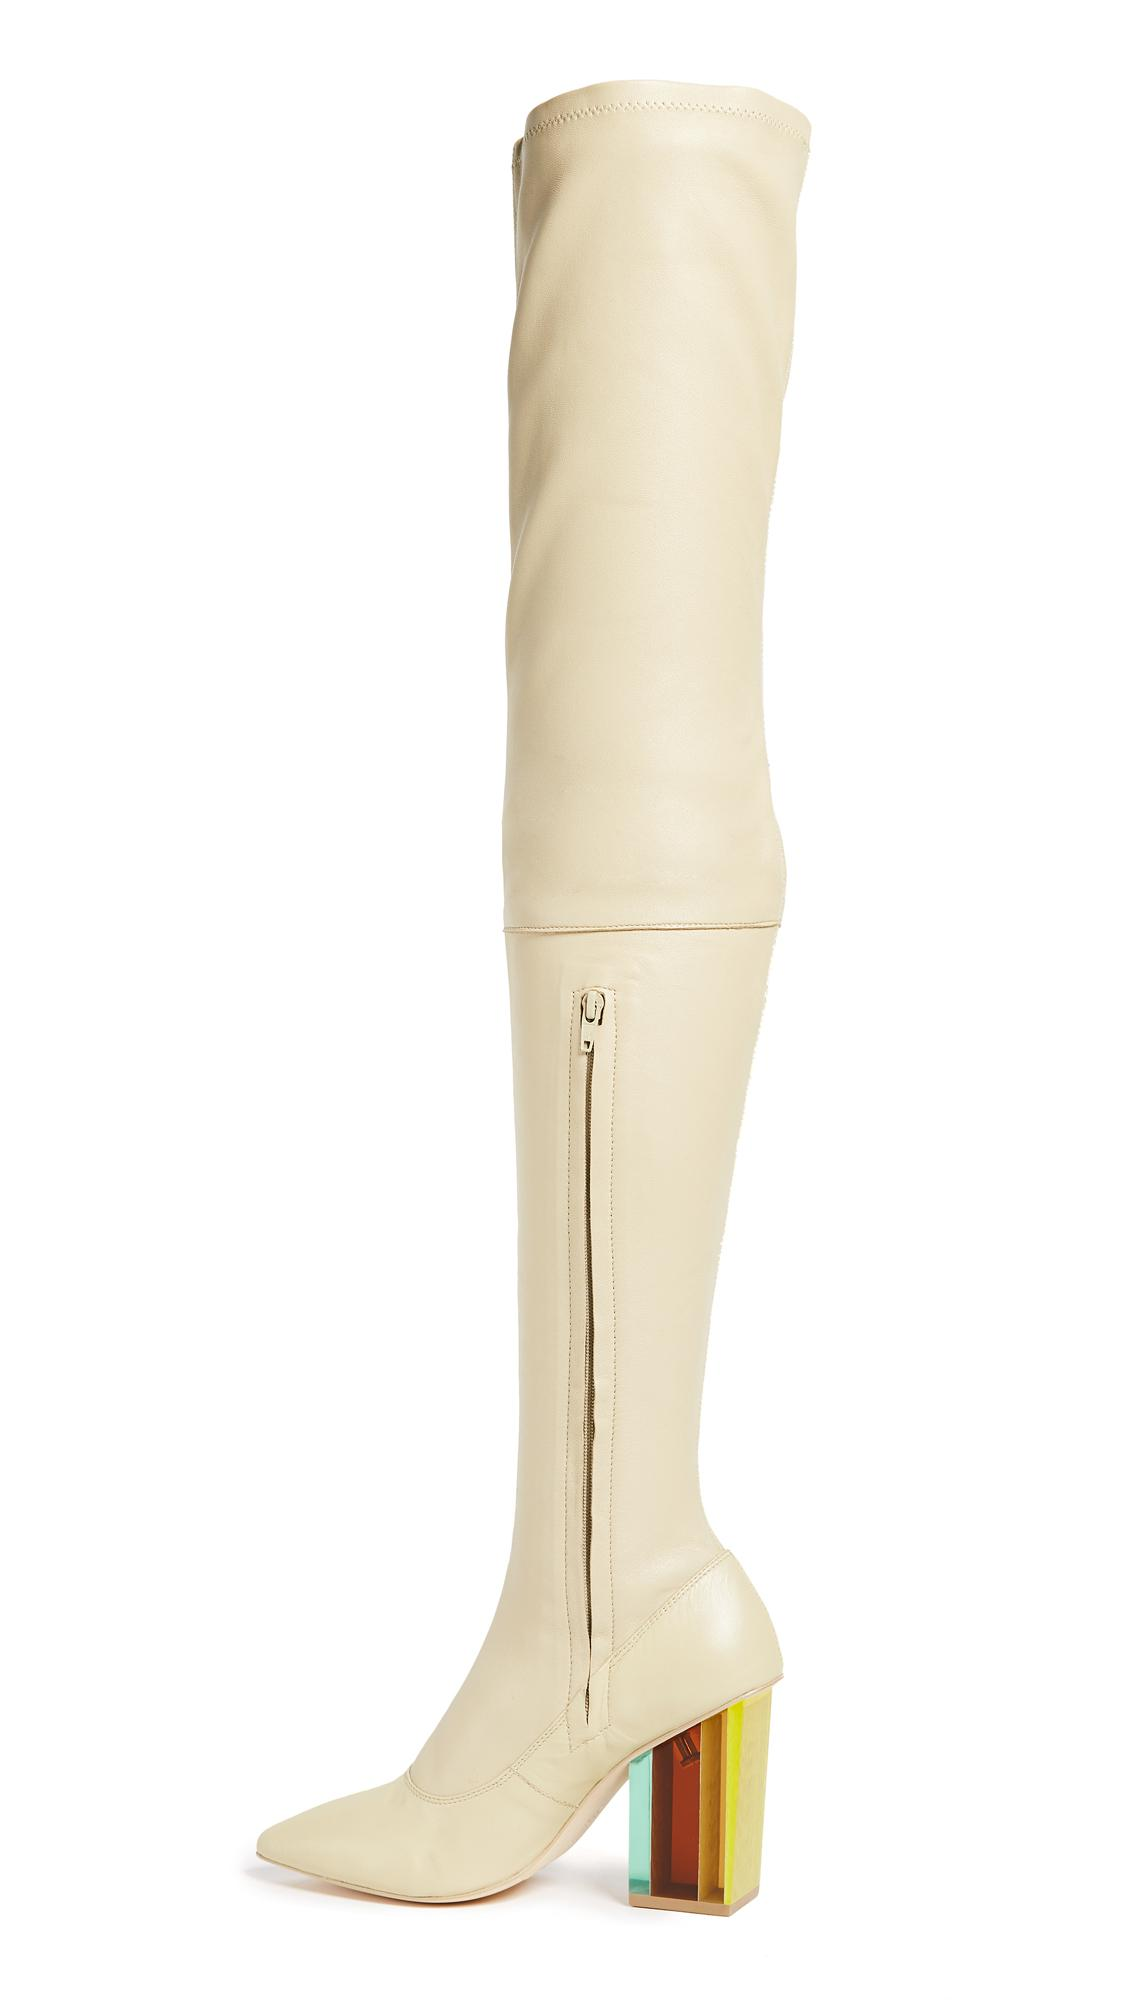 Zimmermann Synthetic Strech Thigh High Boots in Natural